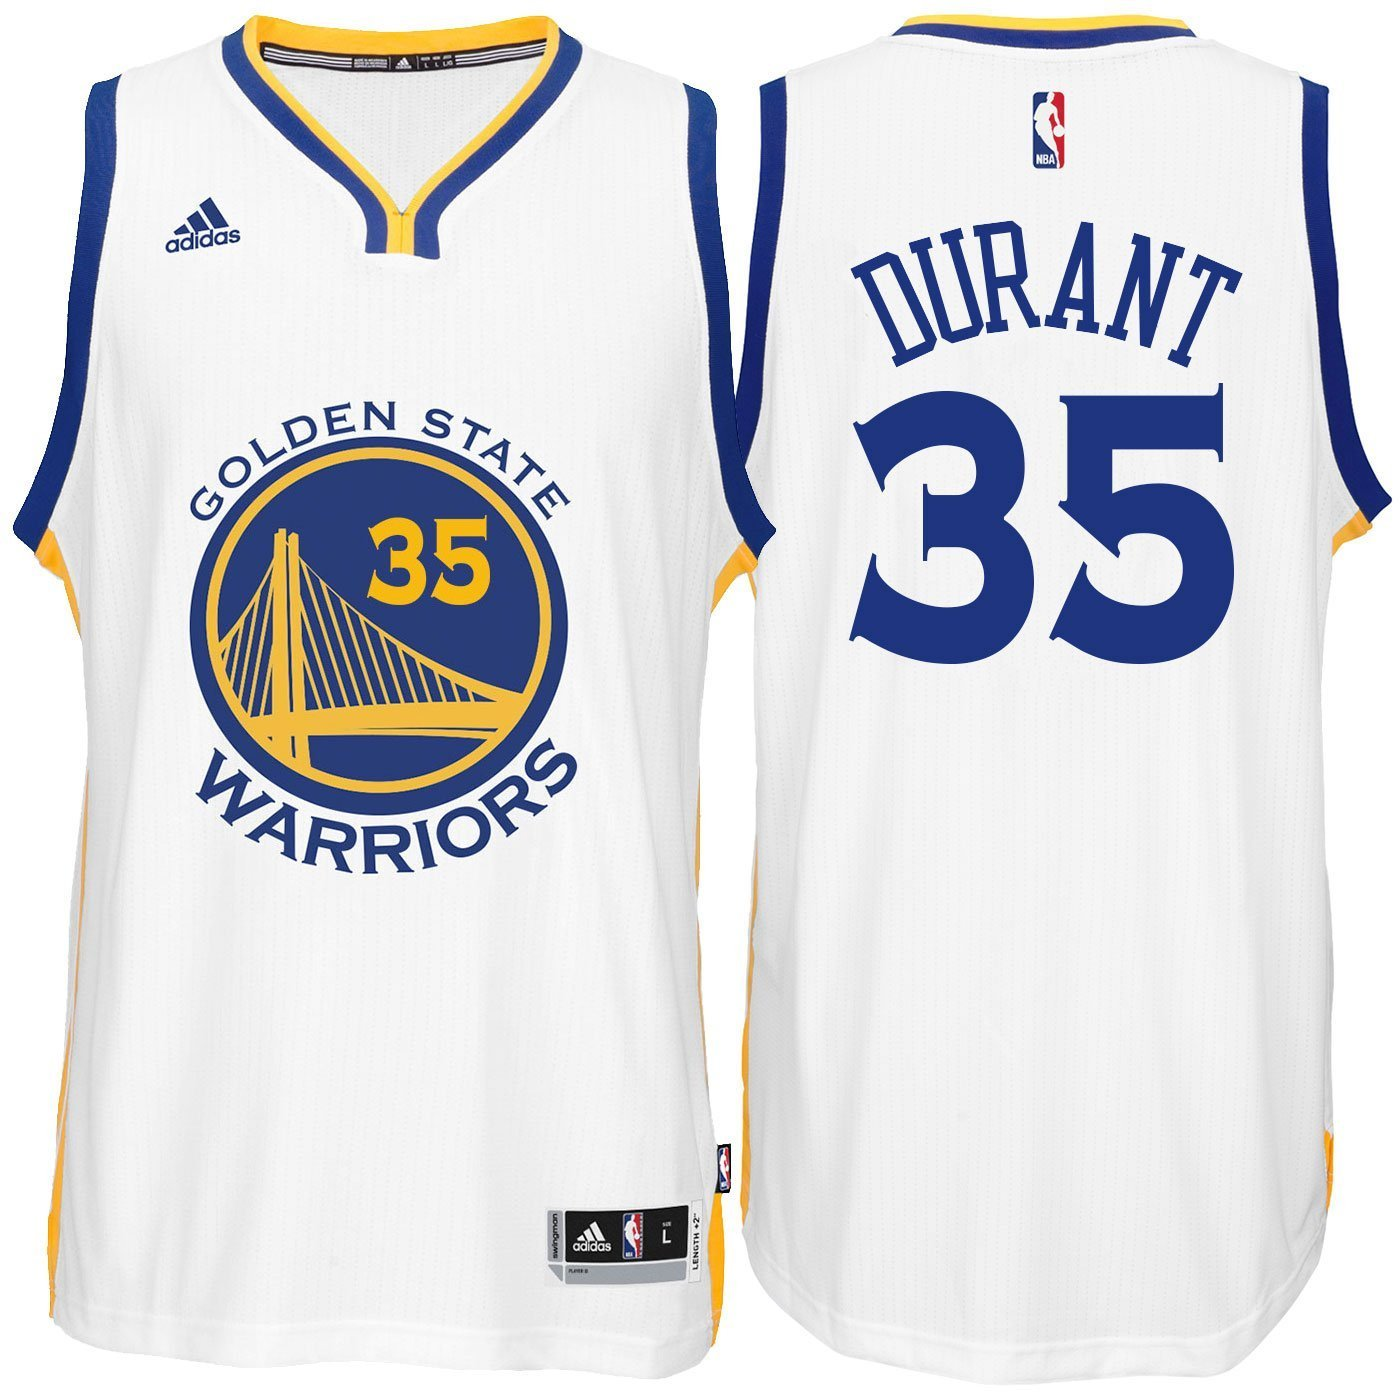 8724094477f Amazon.com : adidas Kevin Durant Golden State Warriors White Youth Swingman  Home Jersey (Large 14/16) : Clothing